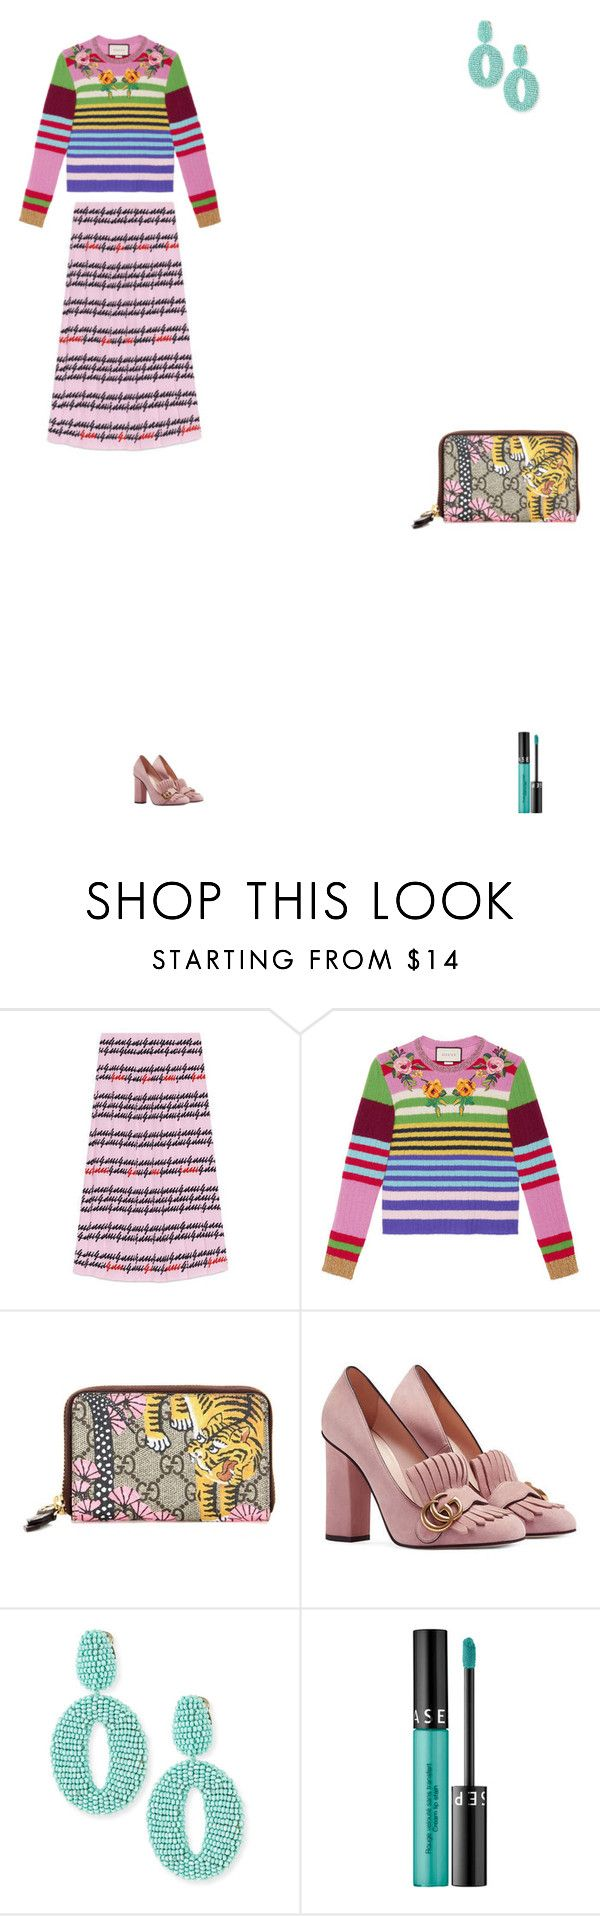 """""""Grace"""" by zoechengrace ❤ liked on Polyvore featuring Gucci, Oscar de la Renta and Sephora Collection"""